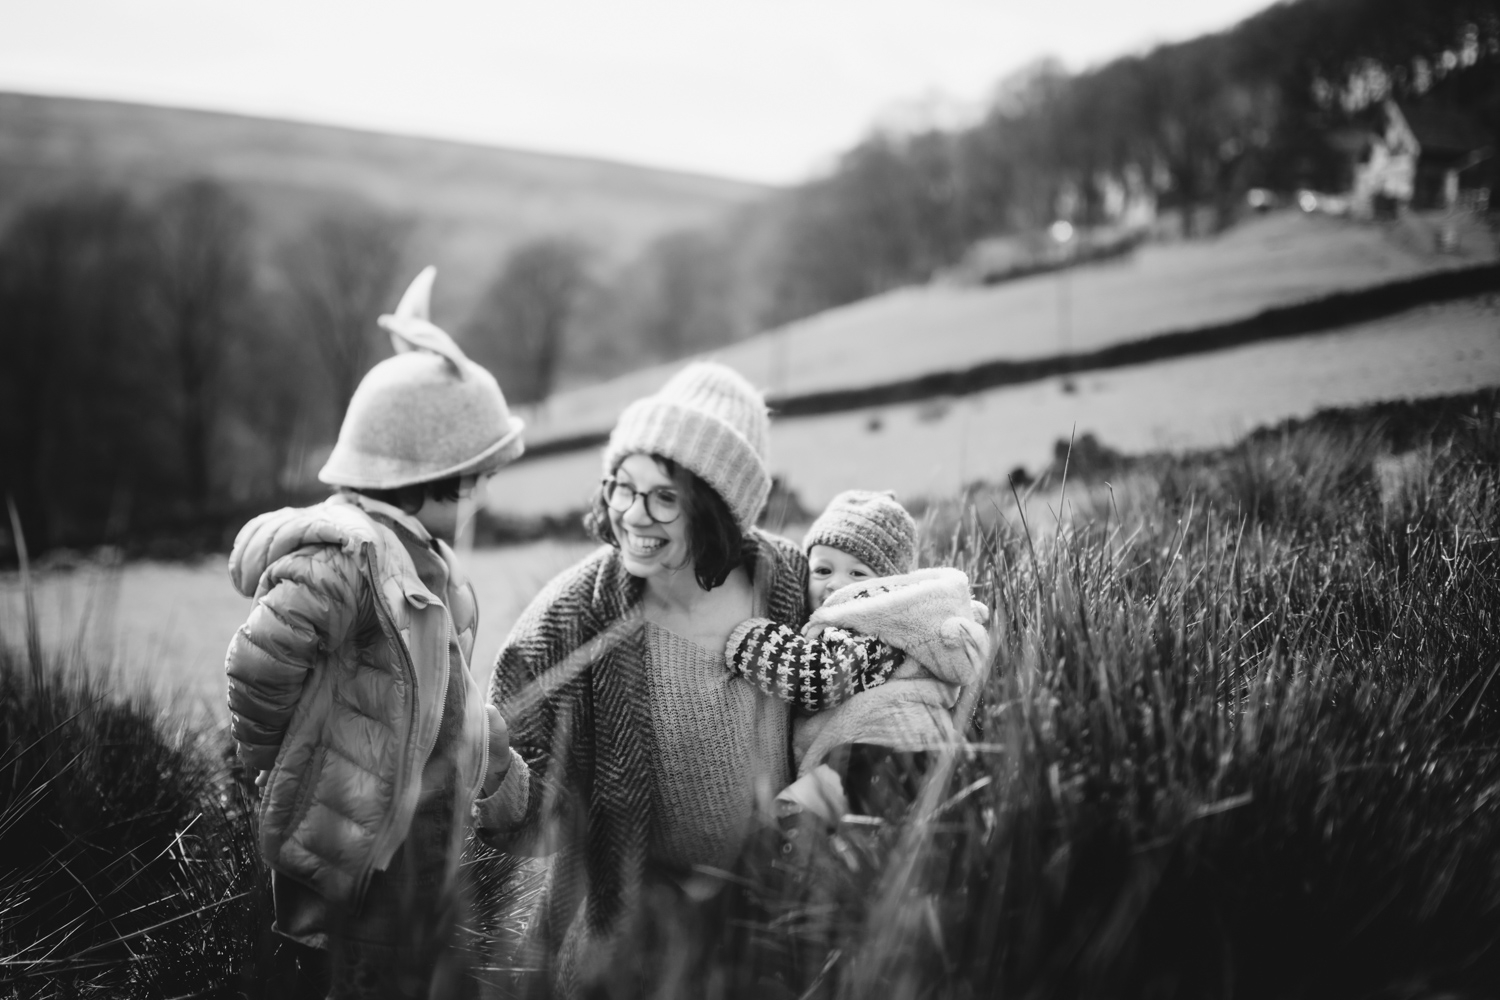 Copy of Captured Childhood retreat photo session in Hebden Bridge, Yorks